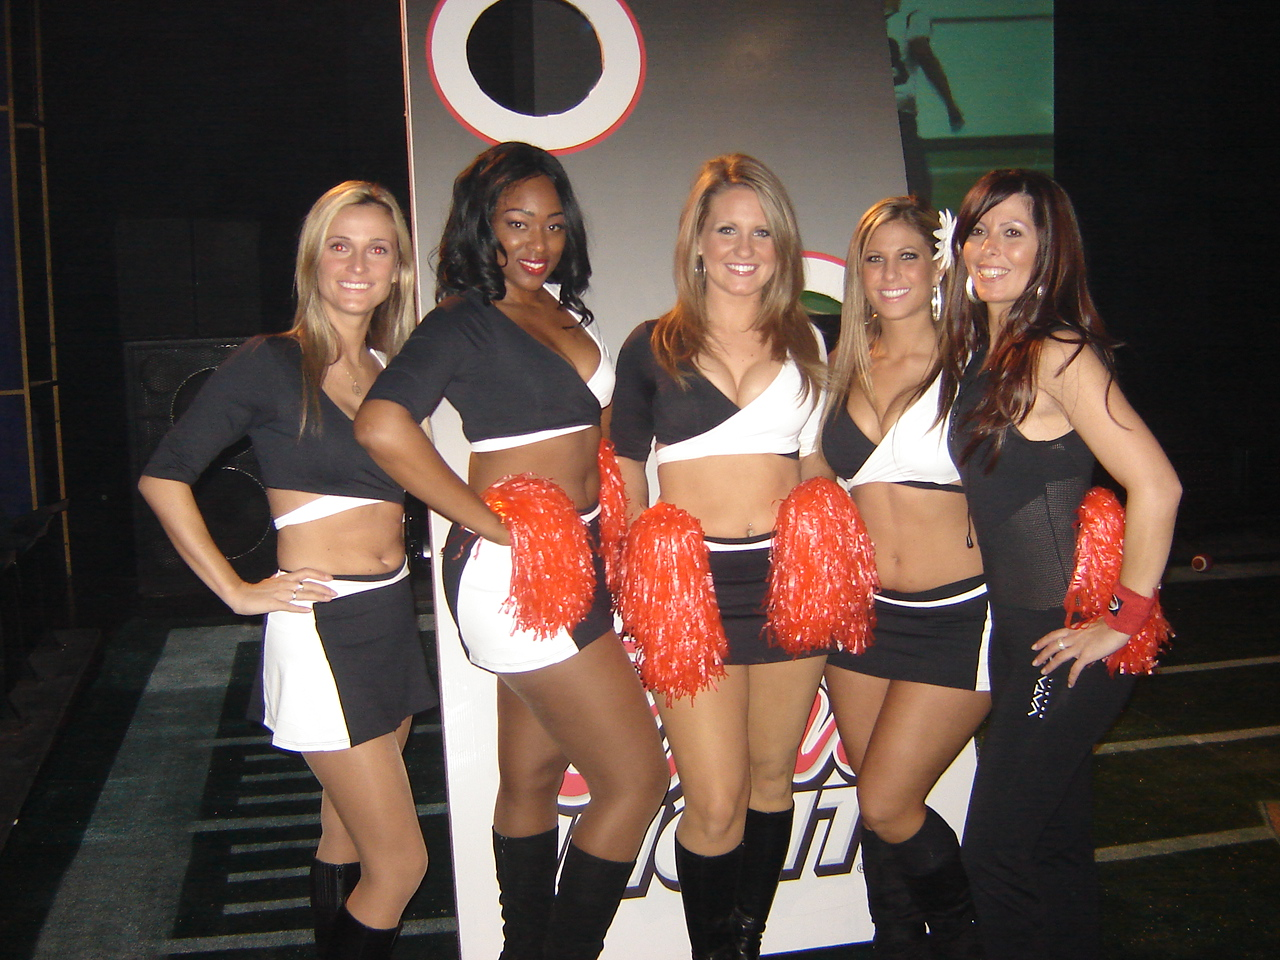 nov.08_-_montreal_-_maxim_grey_cup_party_011